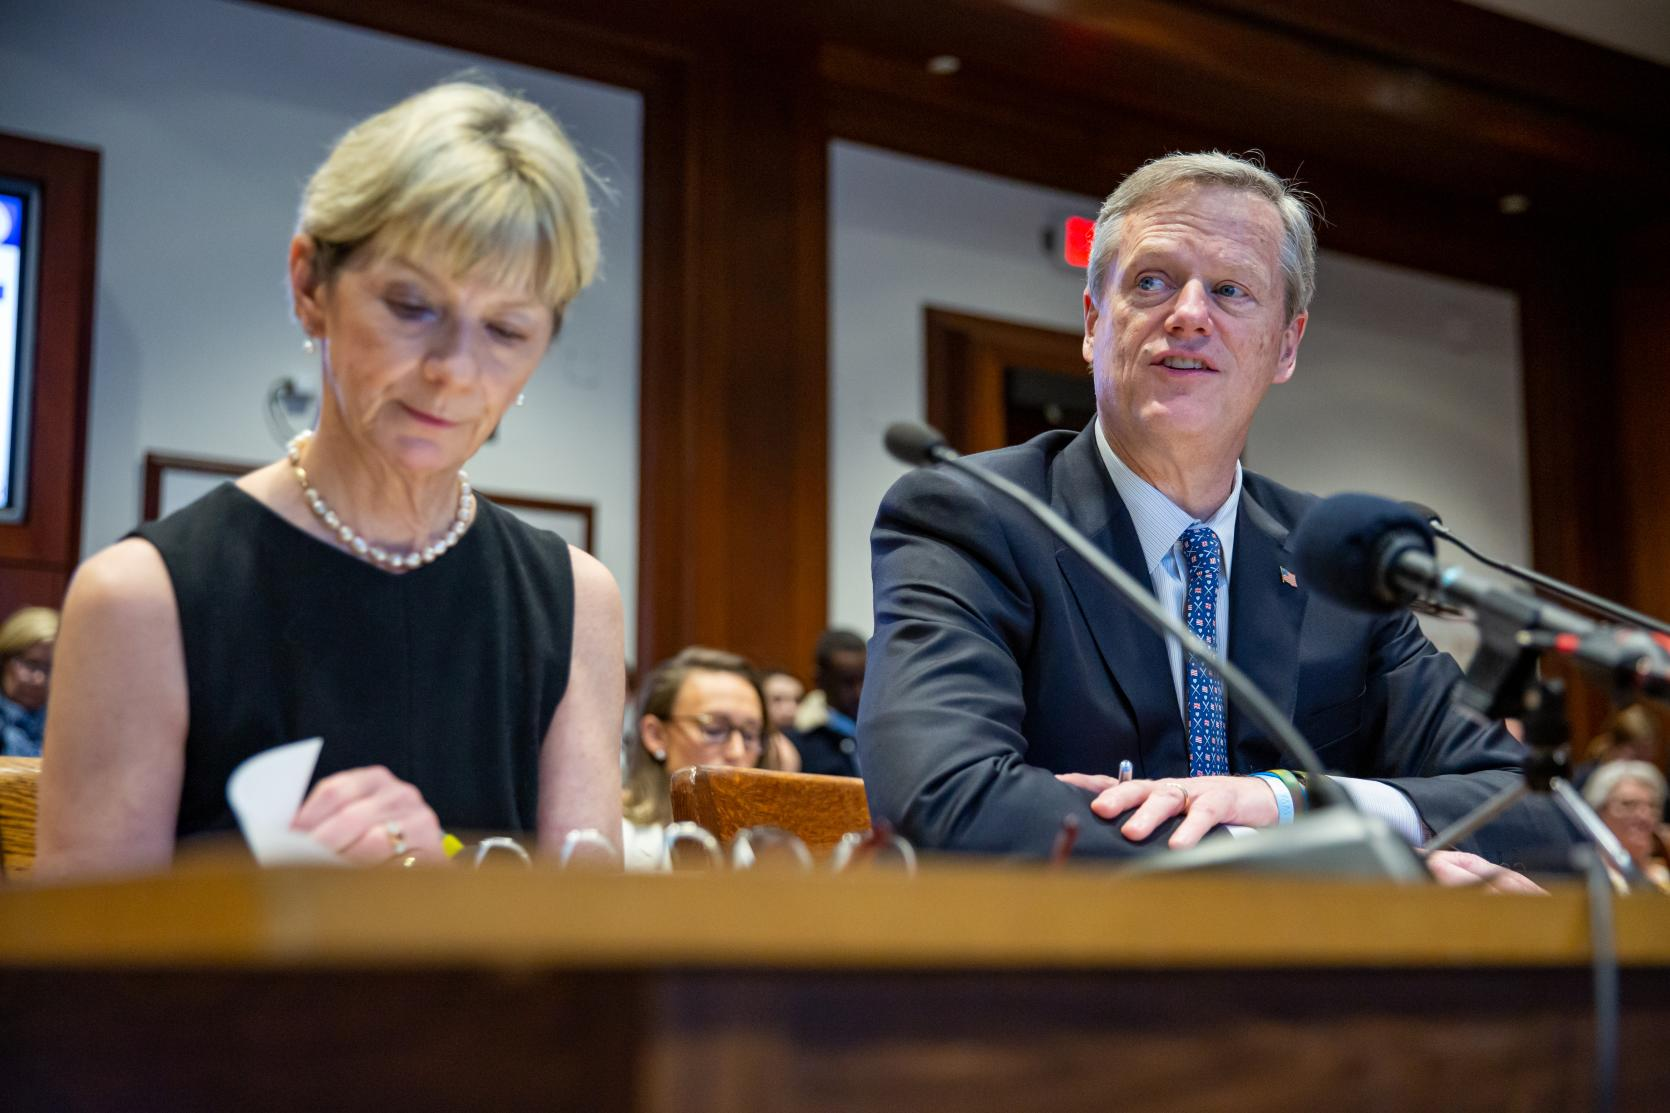 Governor Baker, Secretary Sudders Testify in Support of Administration's Comprehensive Health Care Legislation